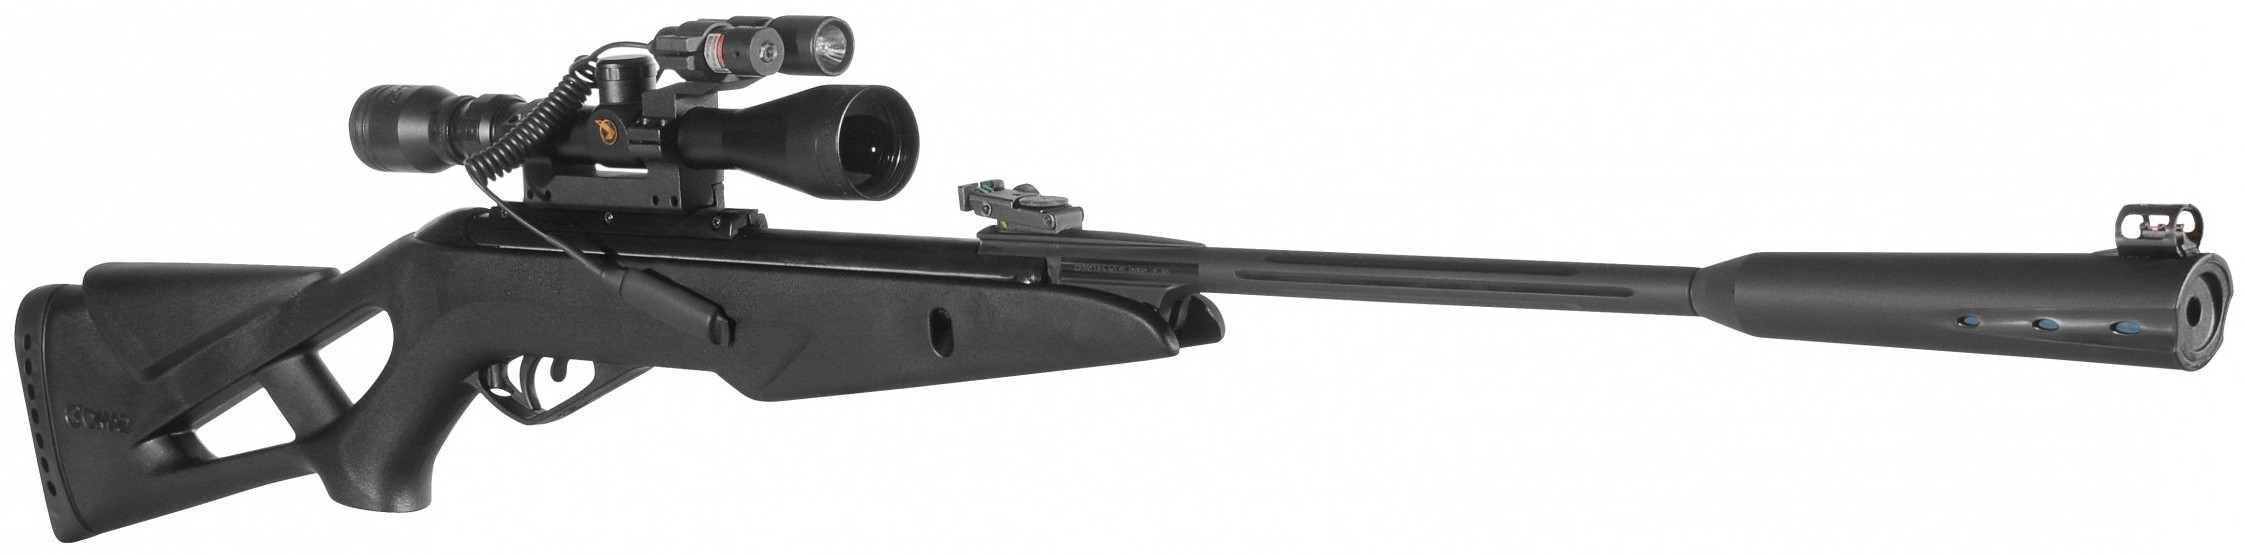 Gamo Air Rifle 4 5mm Whisper X Vampir Buy Online In